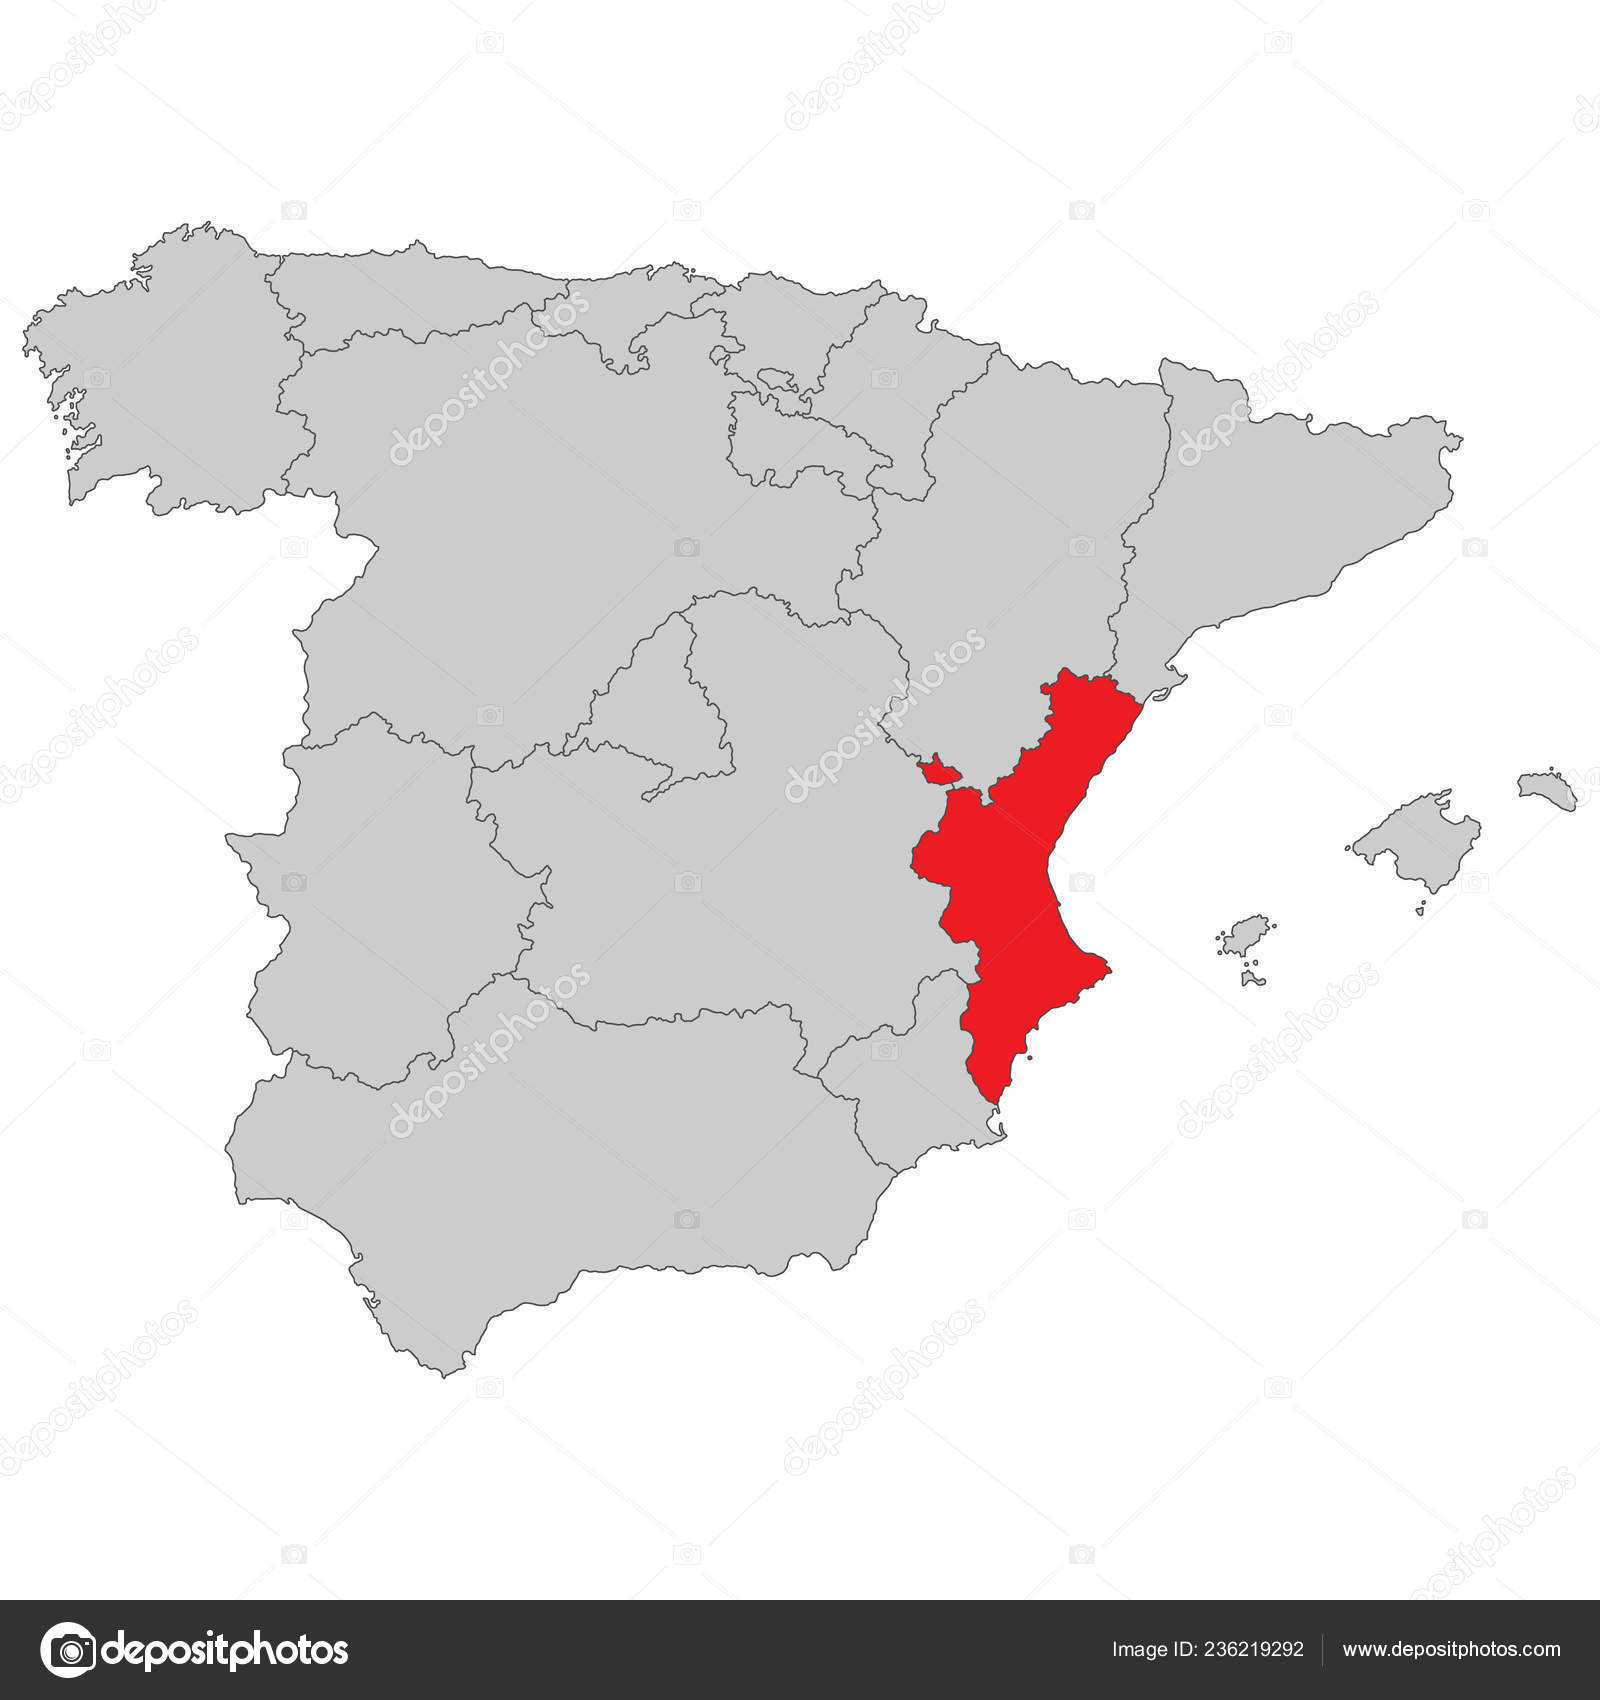 Map Of Spain Valencia.Spain Map Spain Valencia High Detailed Stock Vector C Ii Graphics